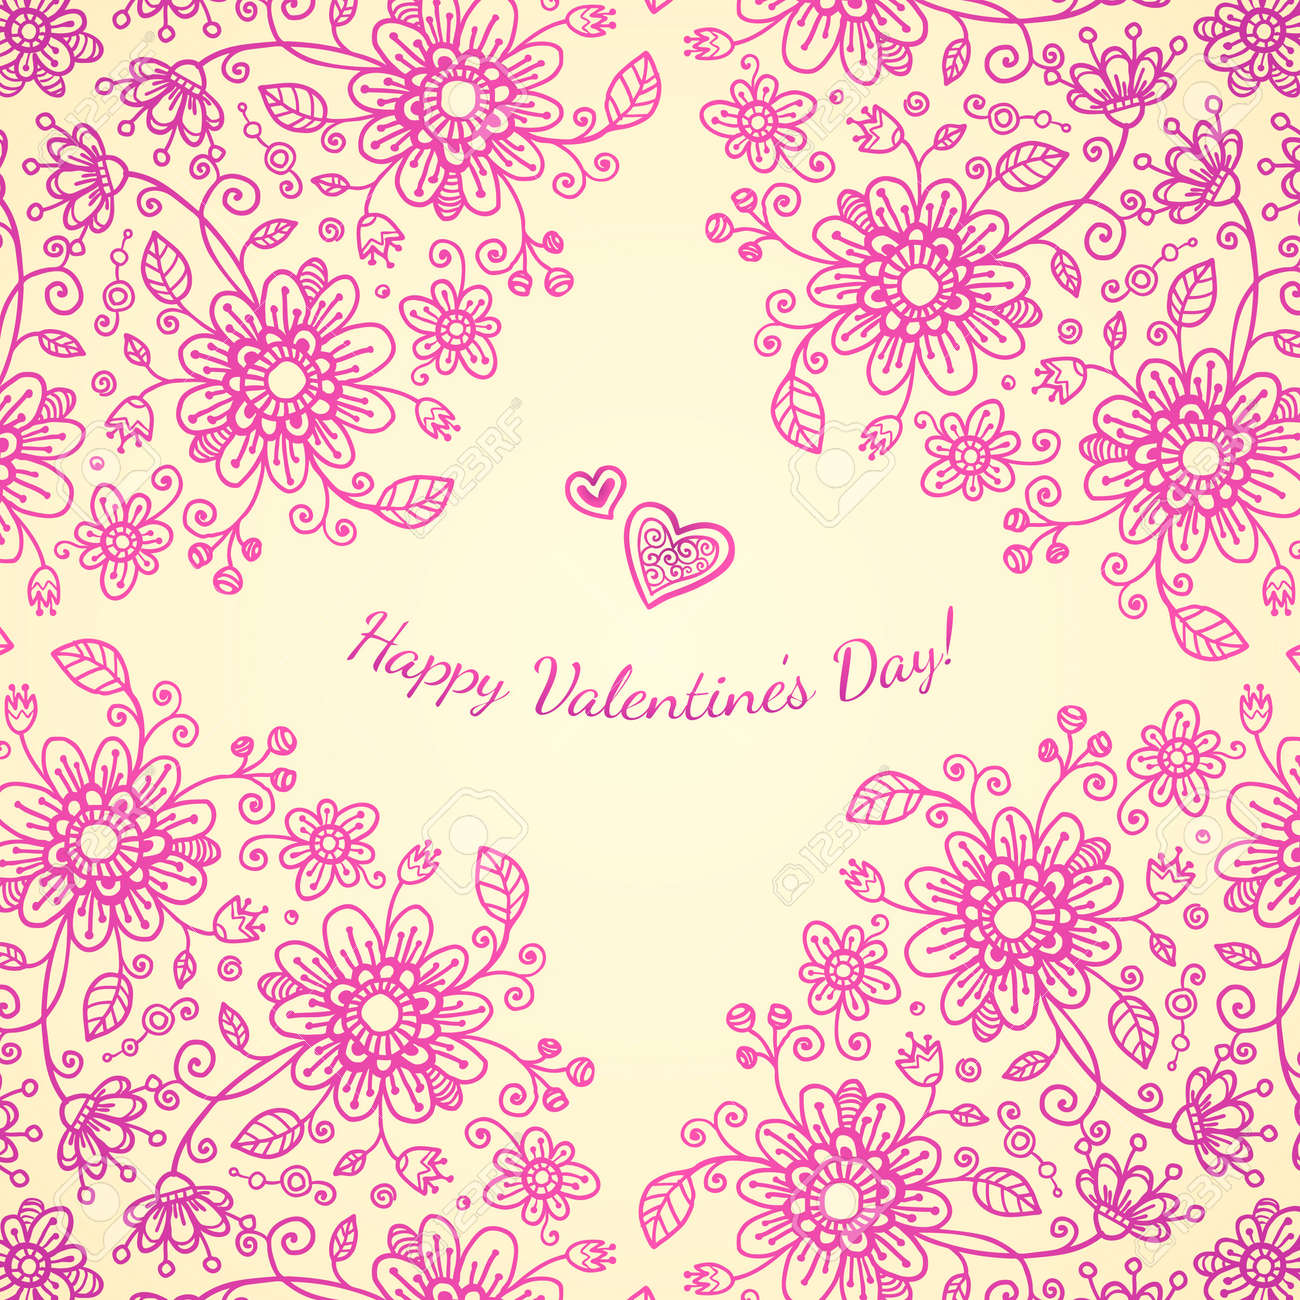 Pint valentines day doodle flowers background Stock Vector - 17540560